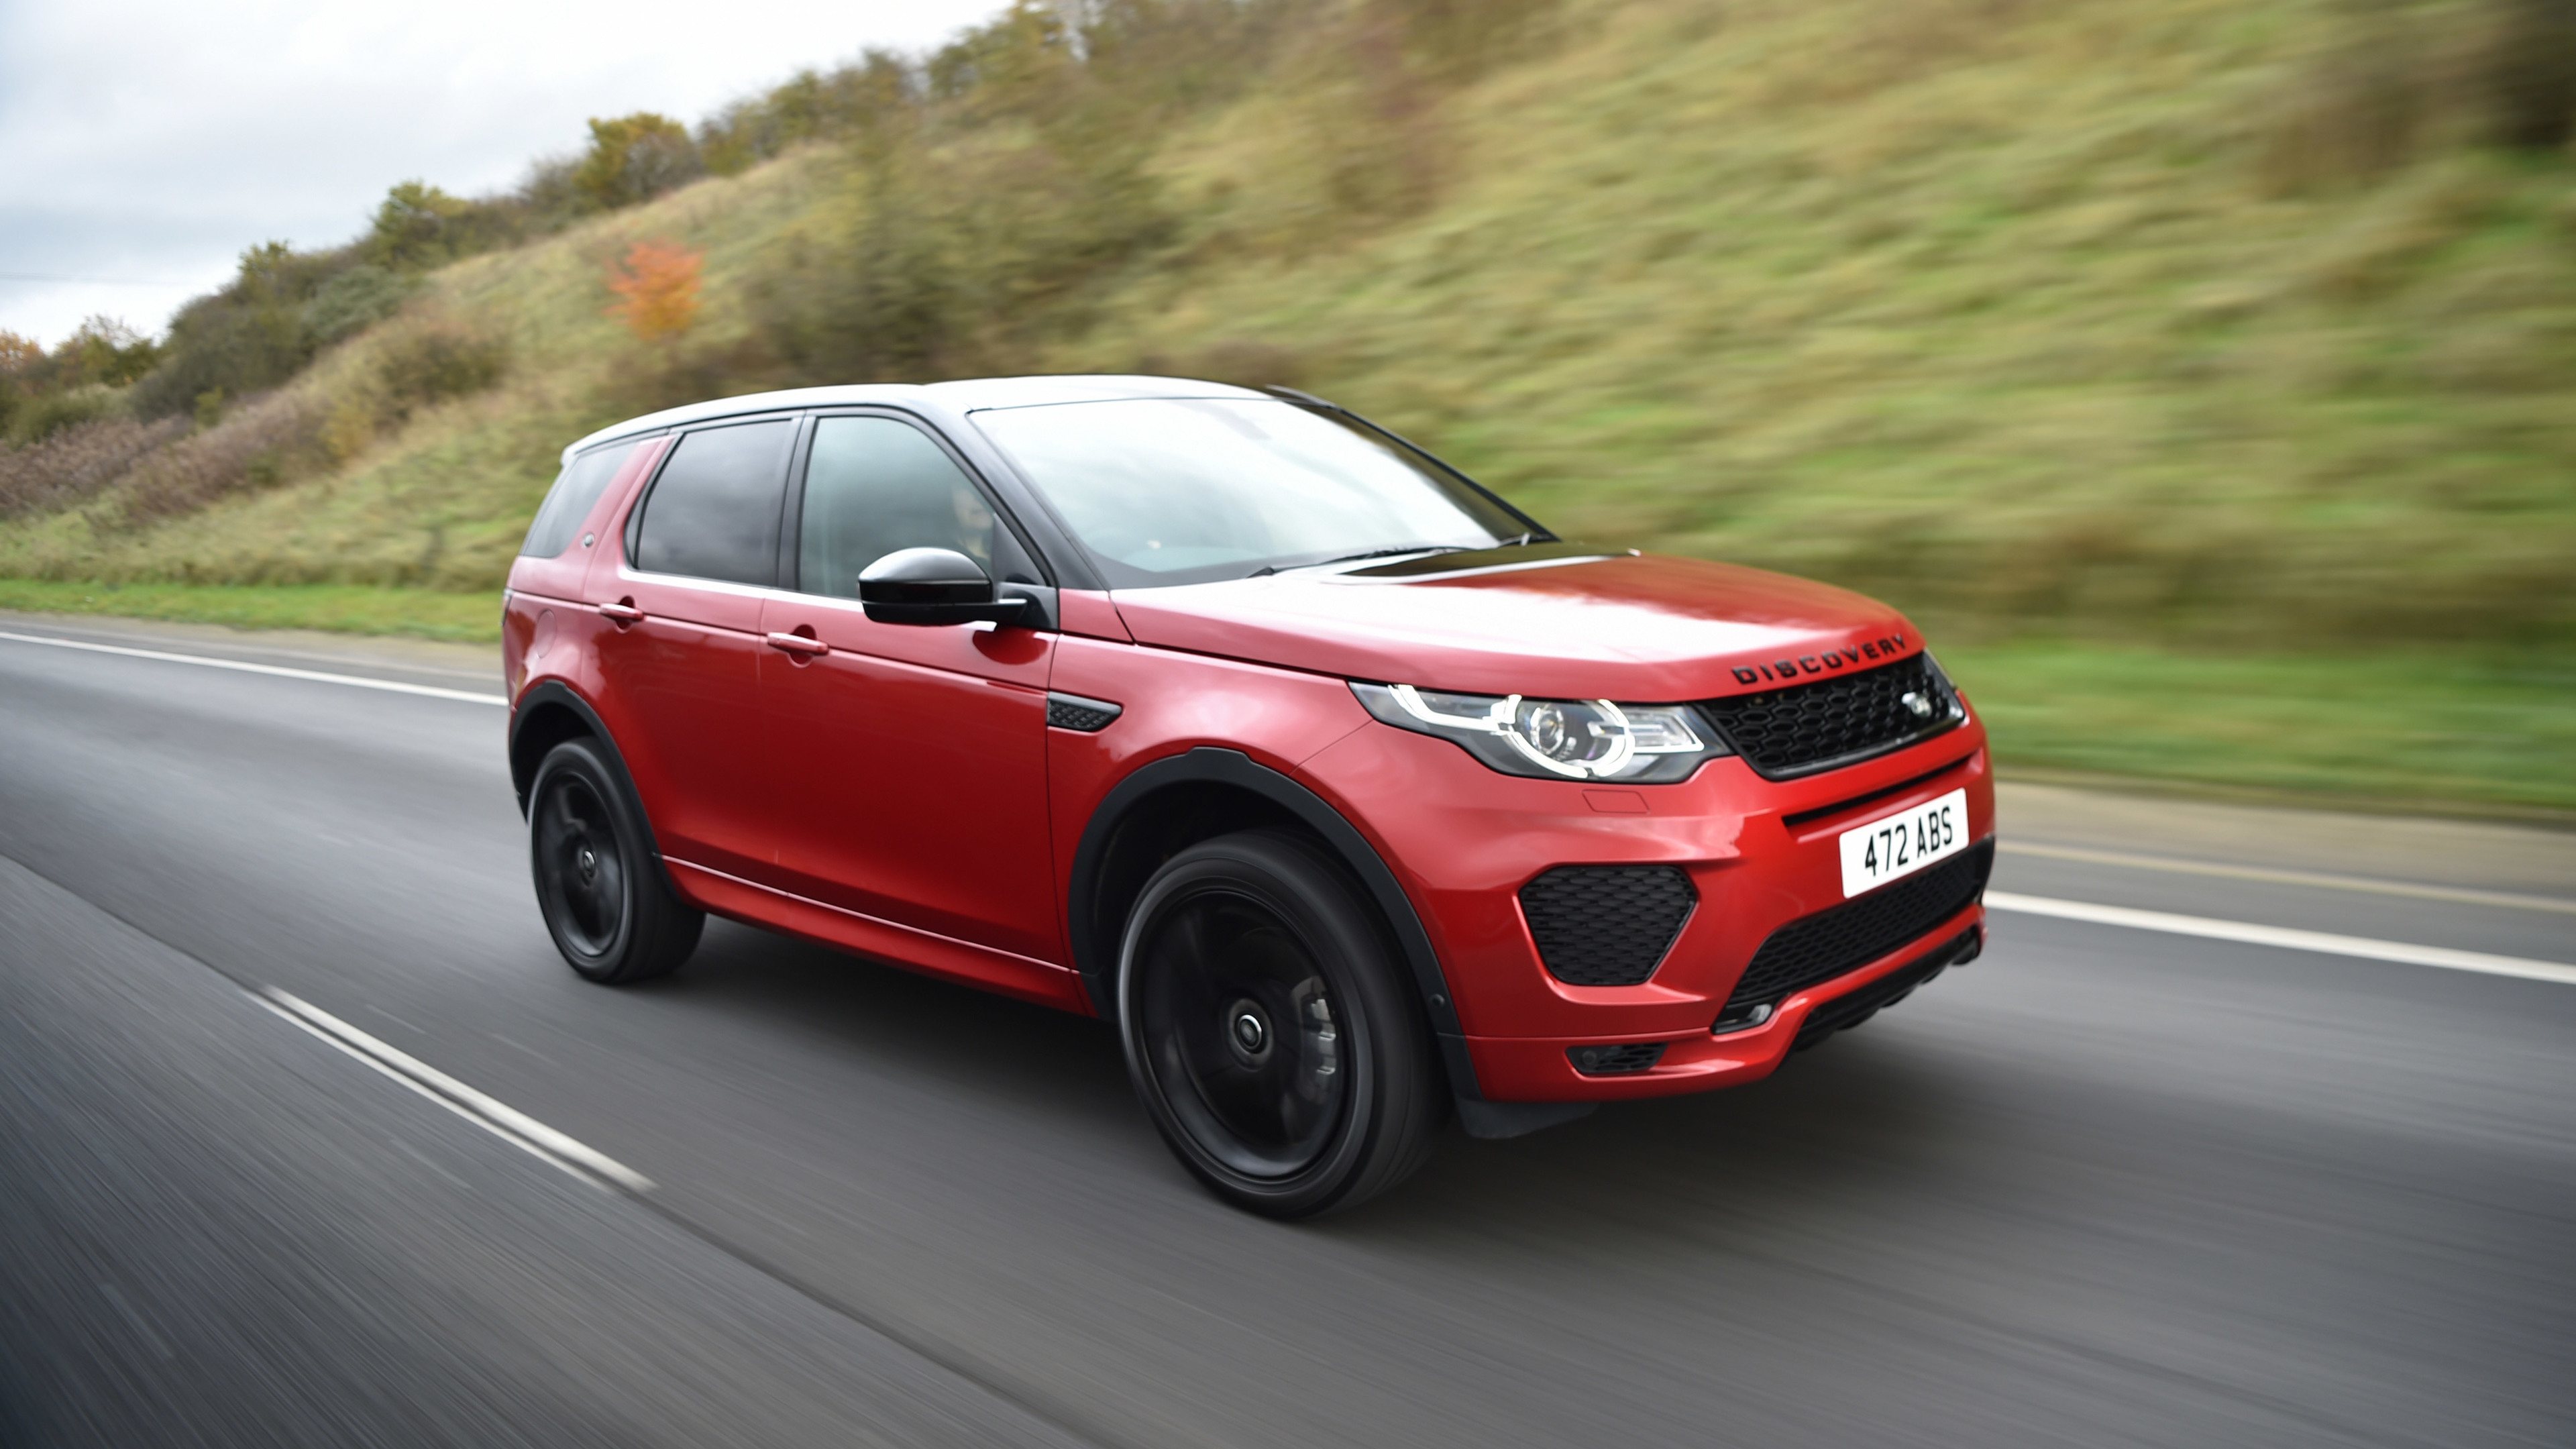 land rover discovery sport hse si4 dynamic lux front 2017 1539107856 - Land Rover Discovery Sport HSE Si4 Dynamic Lux Front 2017 - land rover wallpapers, land rover discovery wallpapers, hd-wallpapers, cars wallpapers, 4k-wallpapers, 2017 cars wallpapers